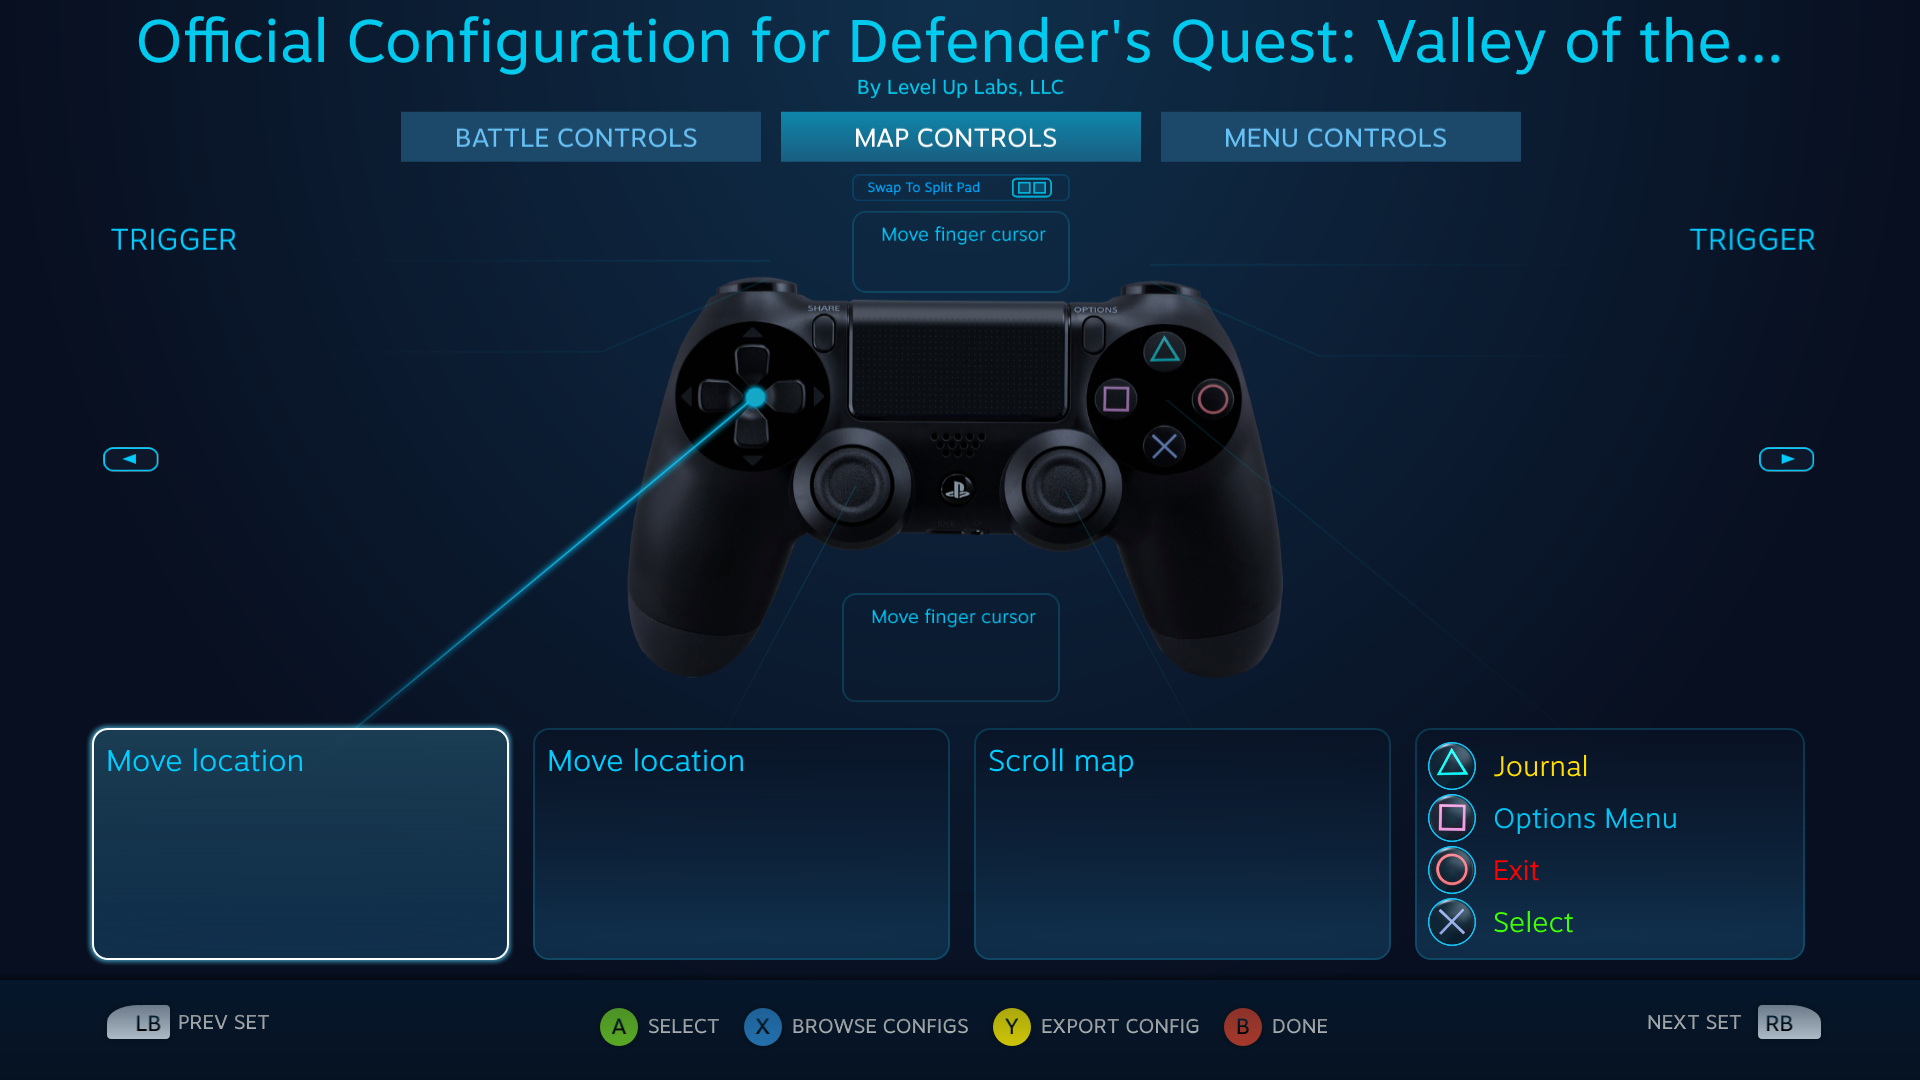 Defender's Quest DS4 Configuration screen -- Map actions